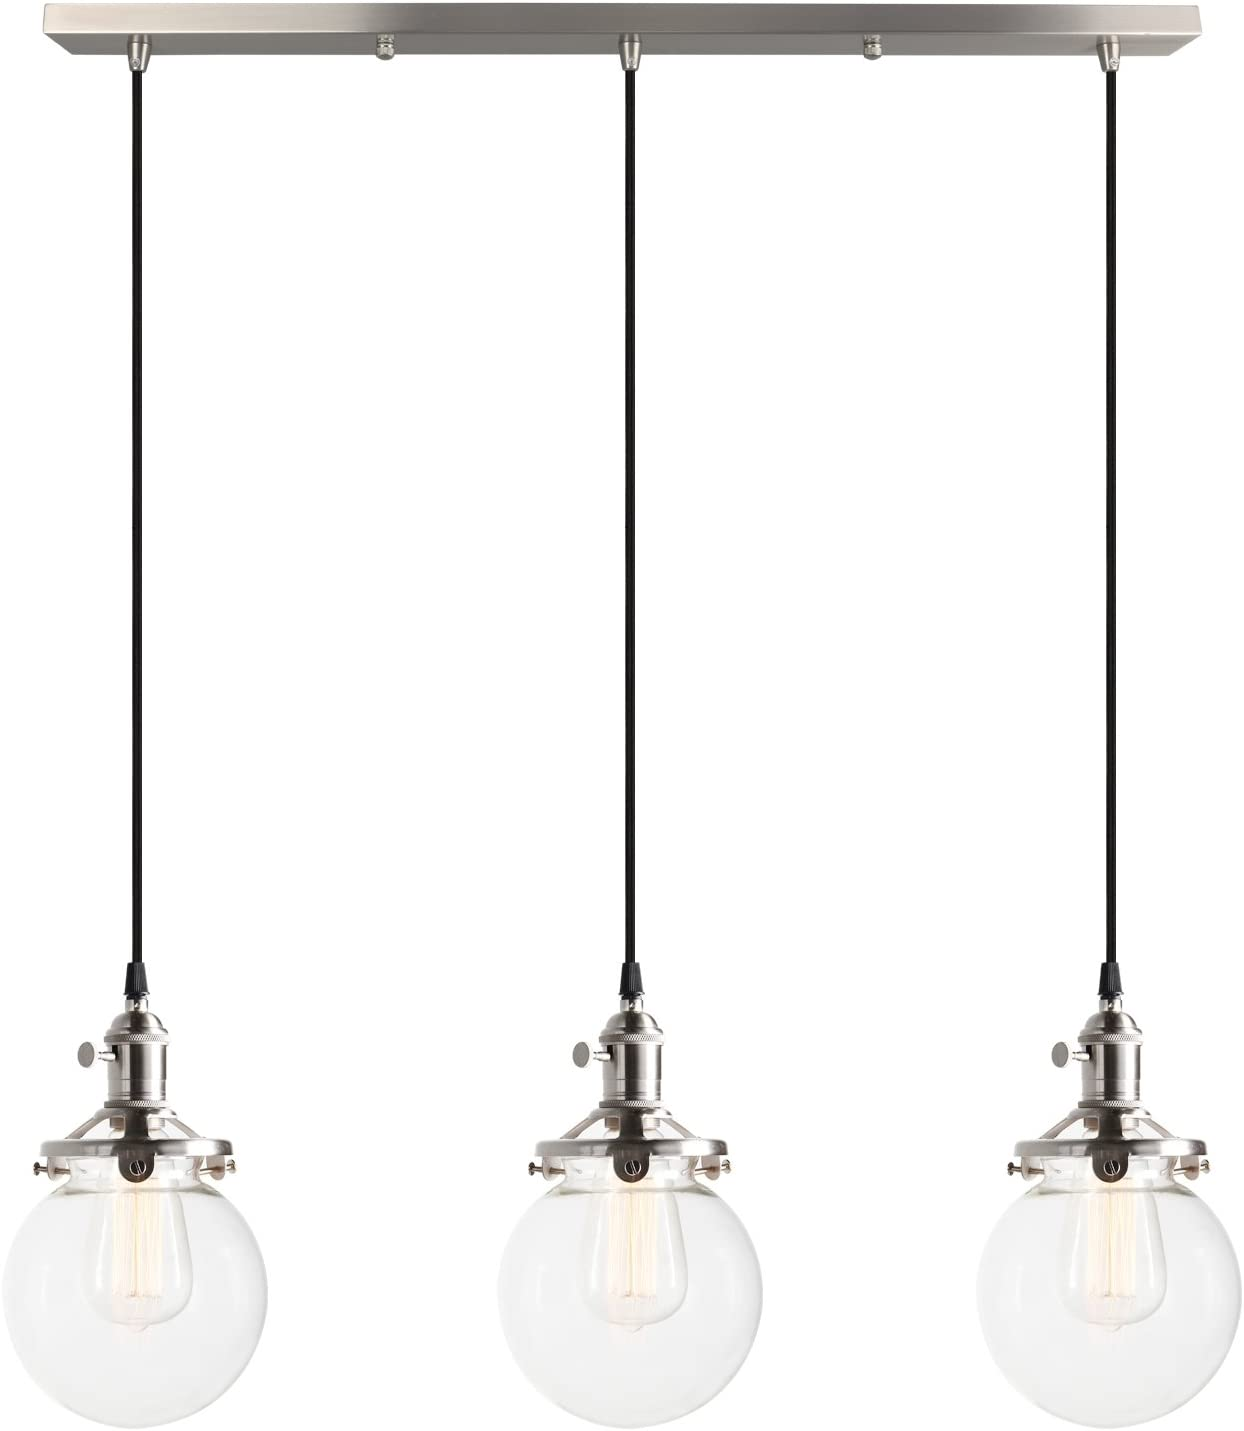 Pathson Industrial Vintage Modern Loft Bar Pendant Light Fittings Cluster Chandelier Edison Hanging Ceiling Lamp Light Fixture 3 Lights With Globe Glass Light Shade E27 Brushed Amazon Co Uk Kitchen Home